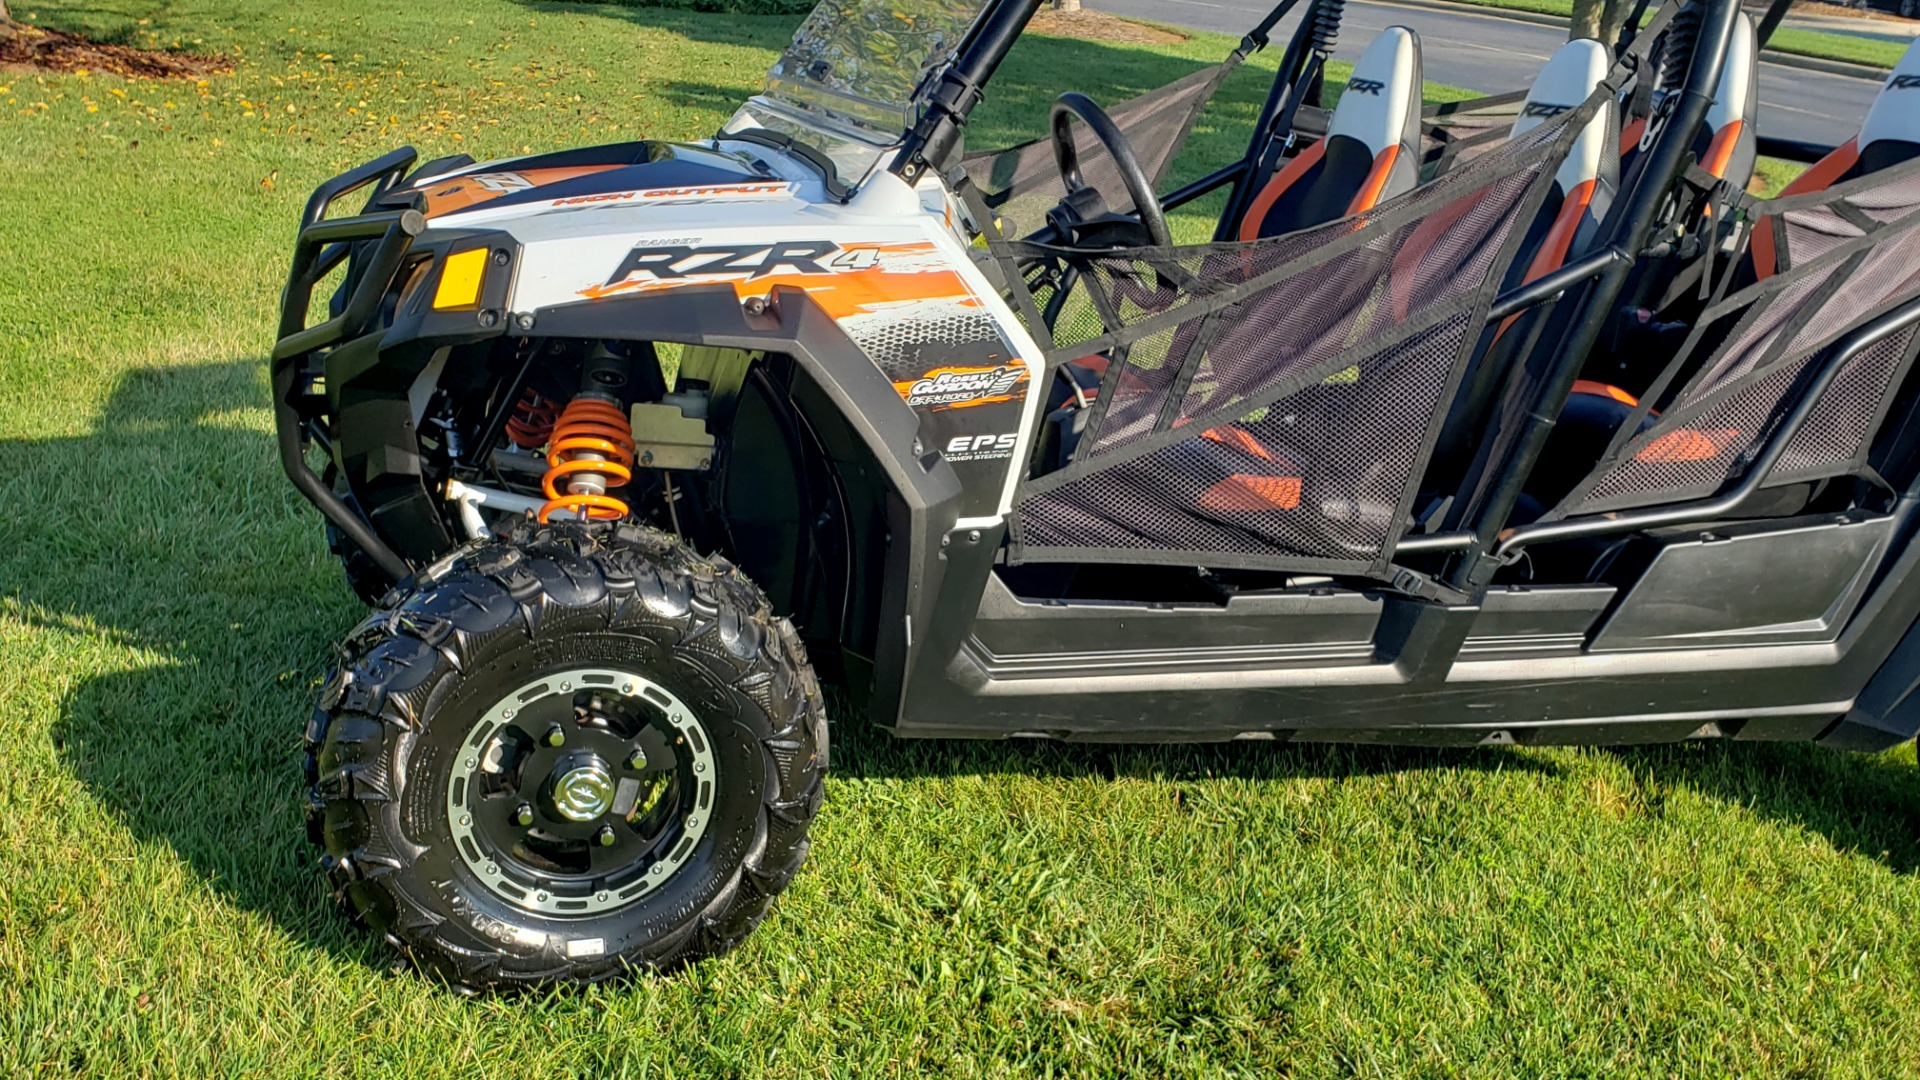 Used 2012 POLARIS RANGER RZR4 / HO 800 EFI / IPHONE CONNECT / SPEAKERS / NEW TIRES for sale Sold at Formula Imports in Charlotte NC 28227 21